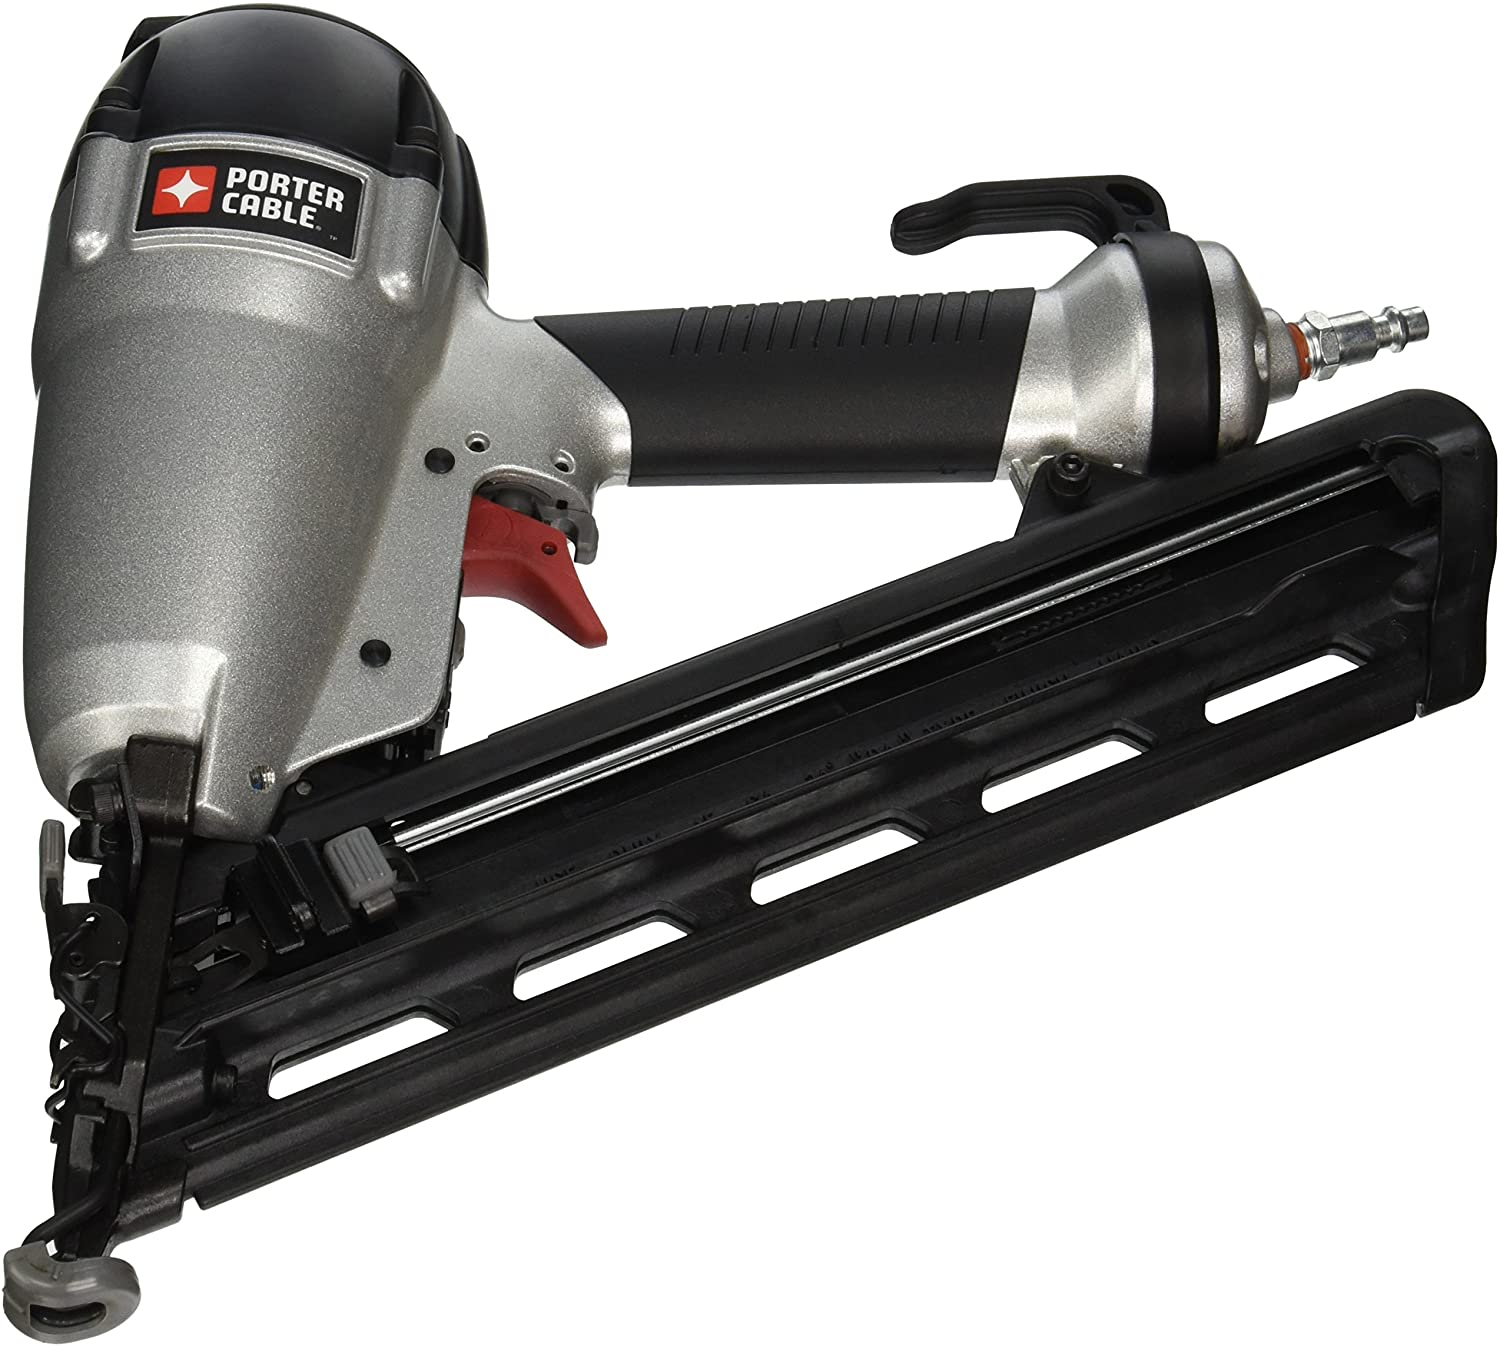 Porter Cable Da250c 1 Inch To 2 1 2 Inch 15 Gauge Angled Finish Nailer Amazon Ca Tools Home Improvement